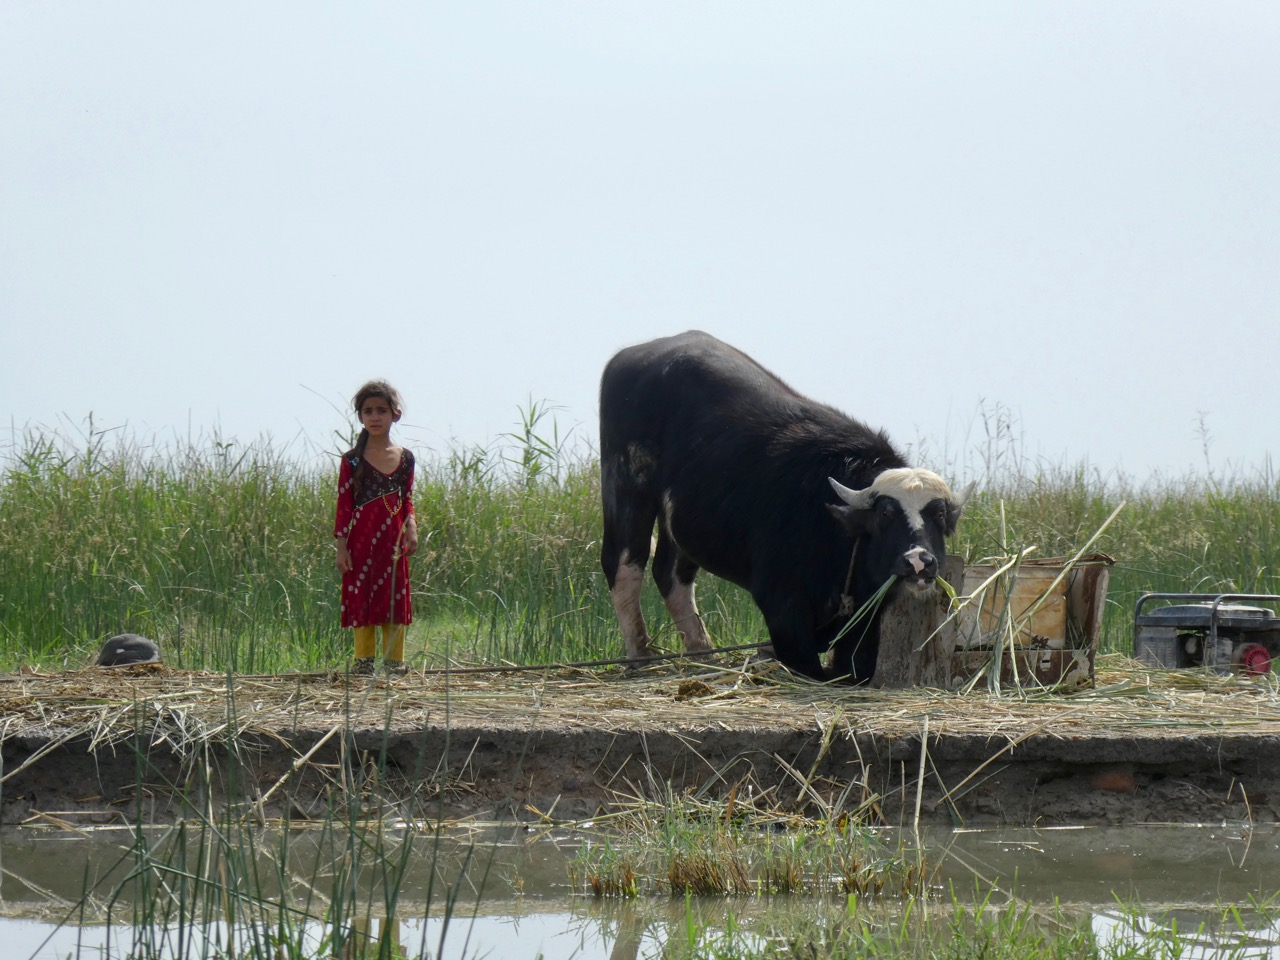 Small girl, big buffalo. Water buffalo milk and cream are an important food source for marsh dwellers in the Mesopotamian Marshes, Iraq. The animals seem almost part of the family. Photo by Erica Gies.